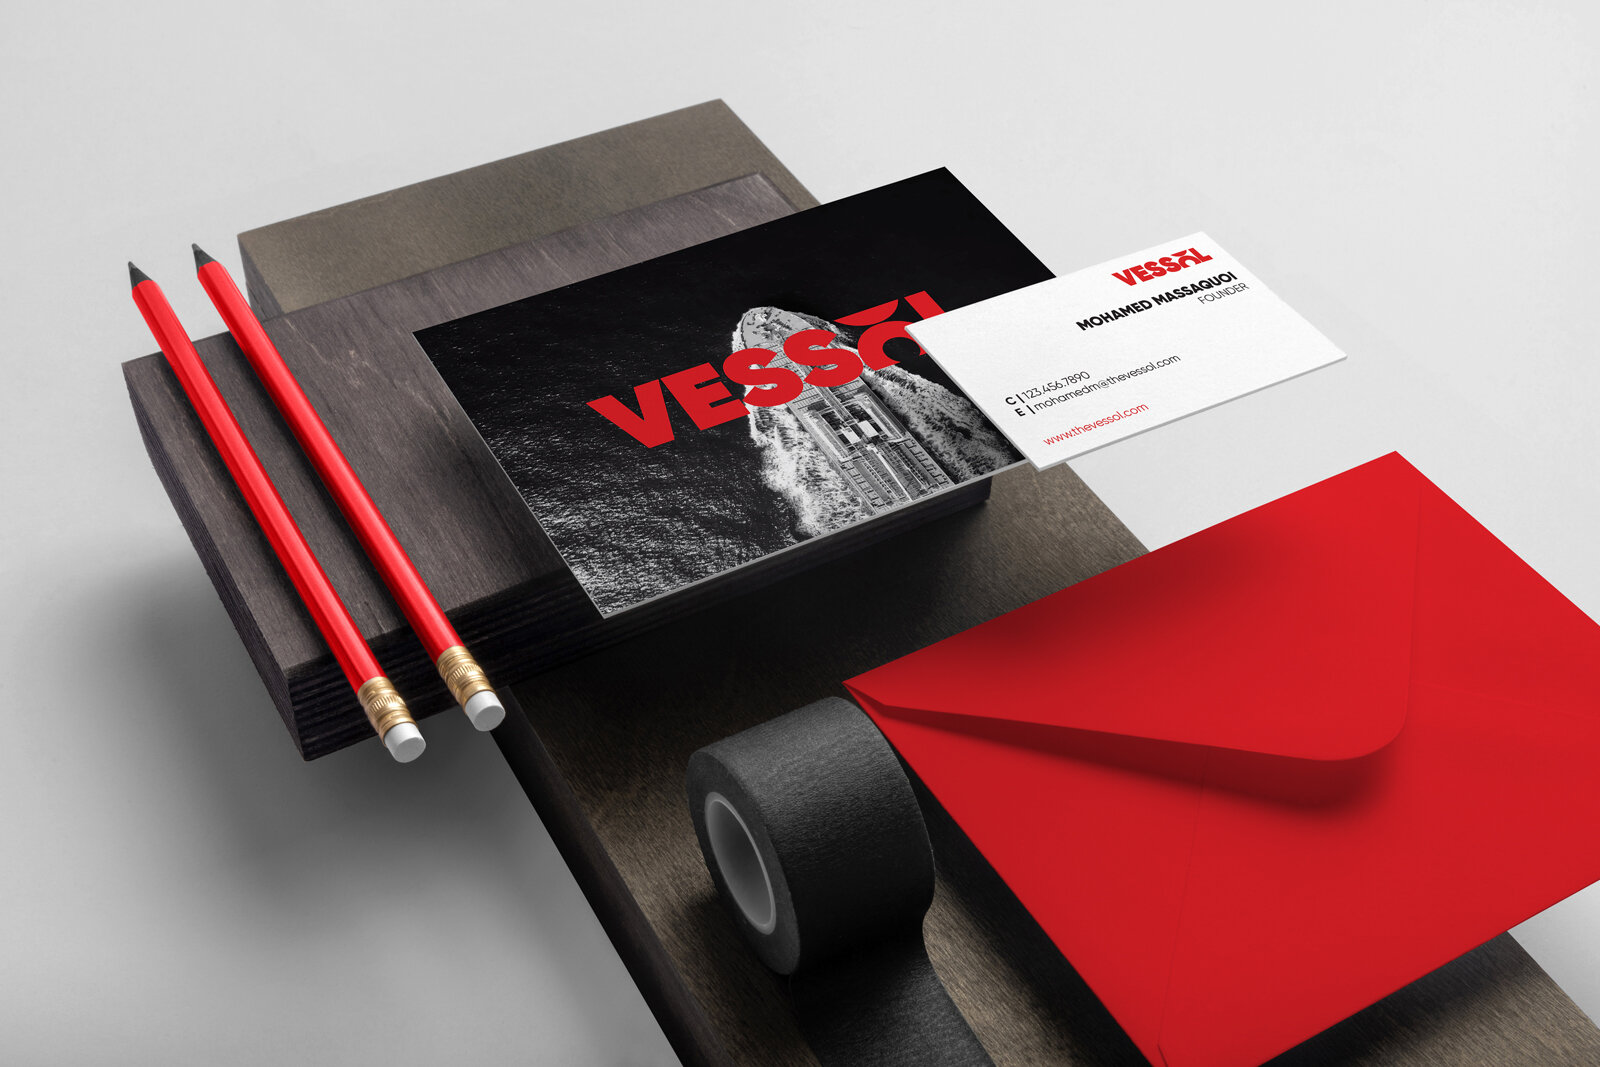 VESSOL_stationary4.jpg